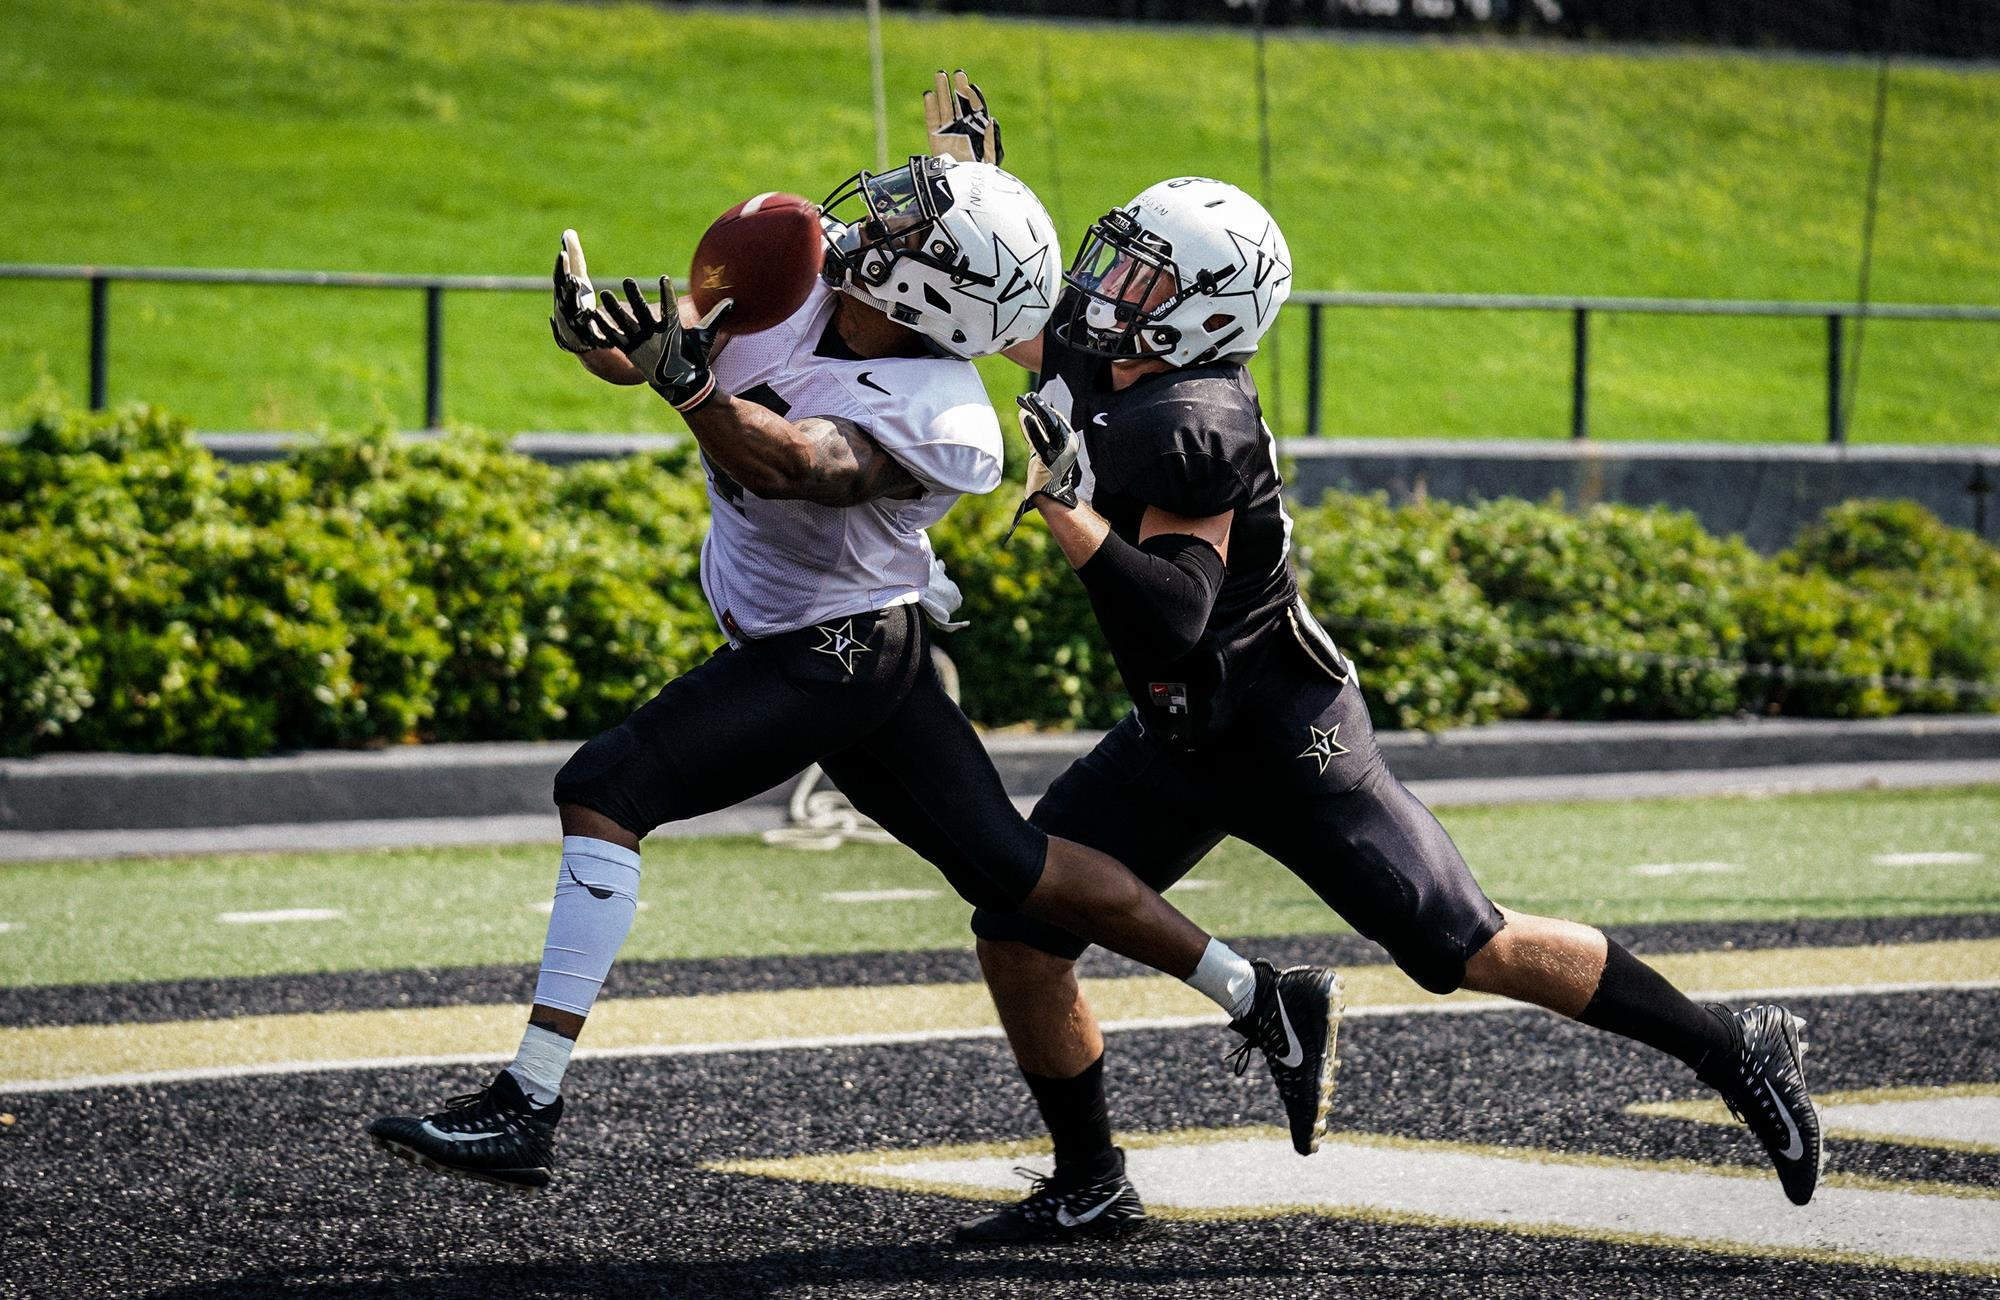 The Dores practiced at Vanderbilt Stadium on Tuesday